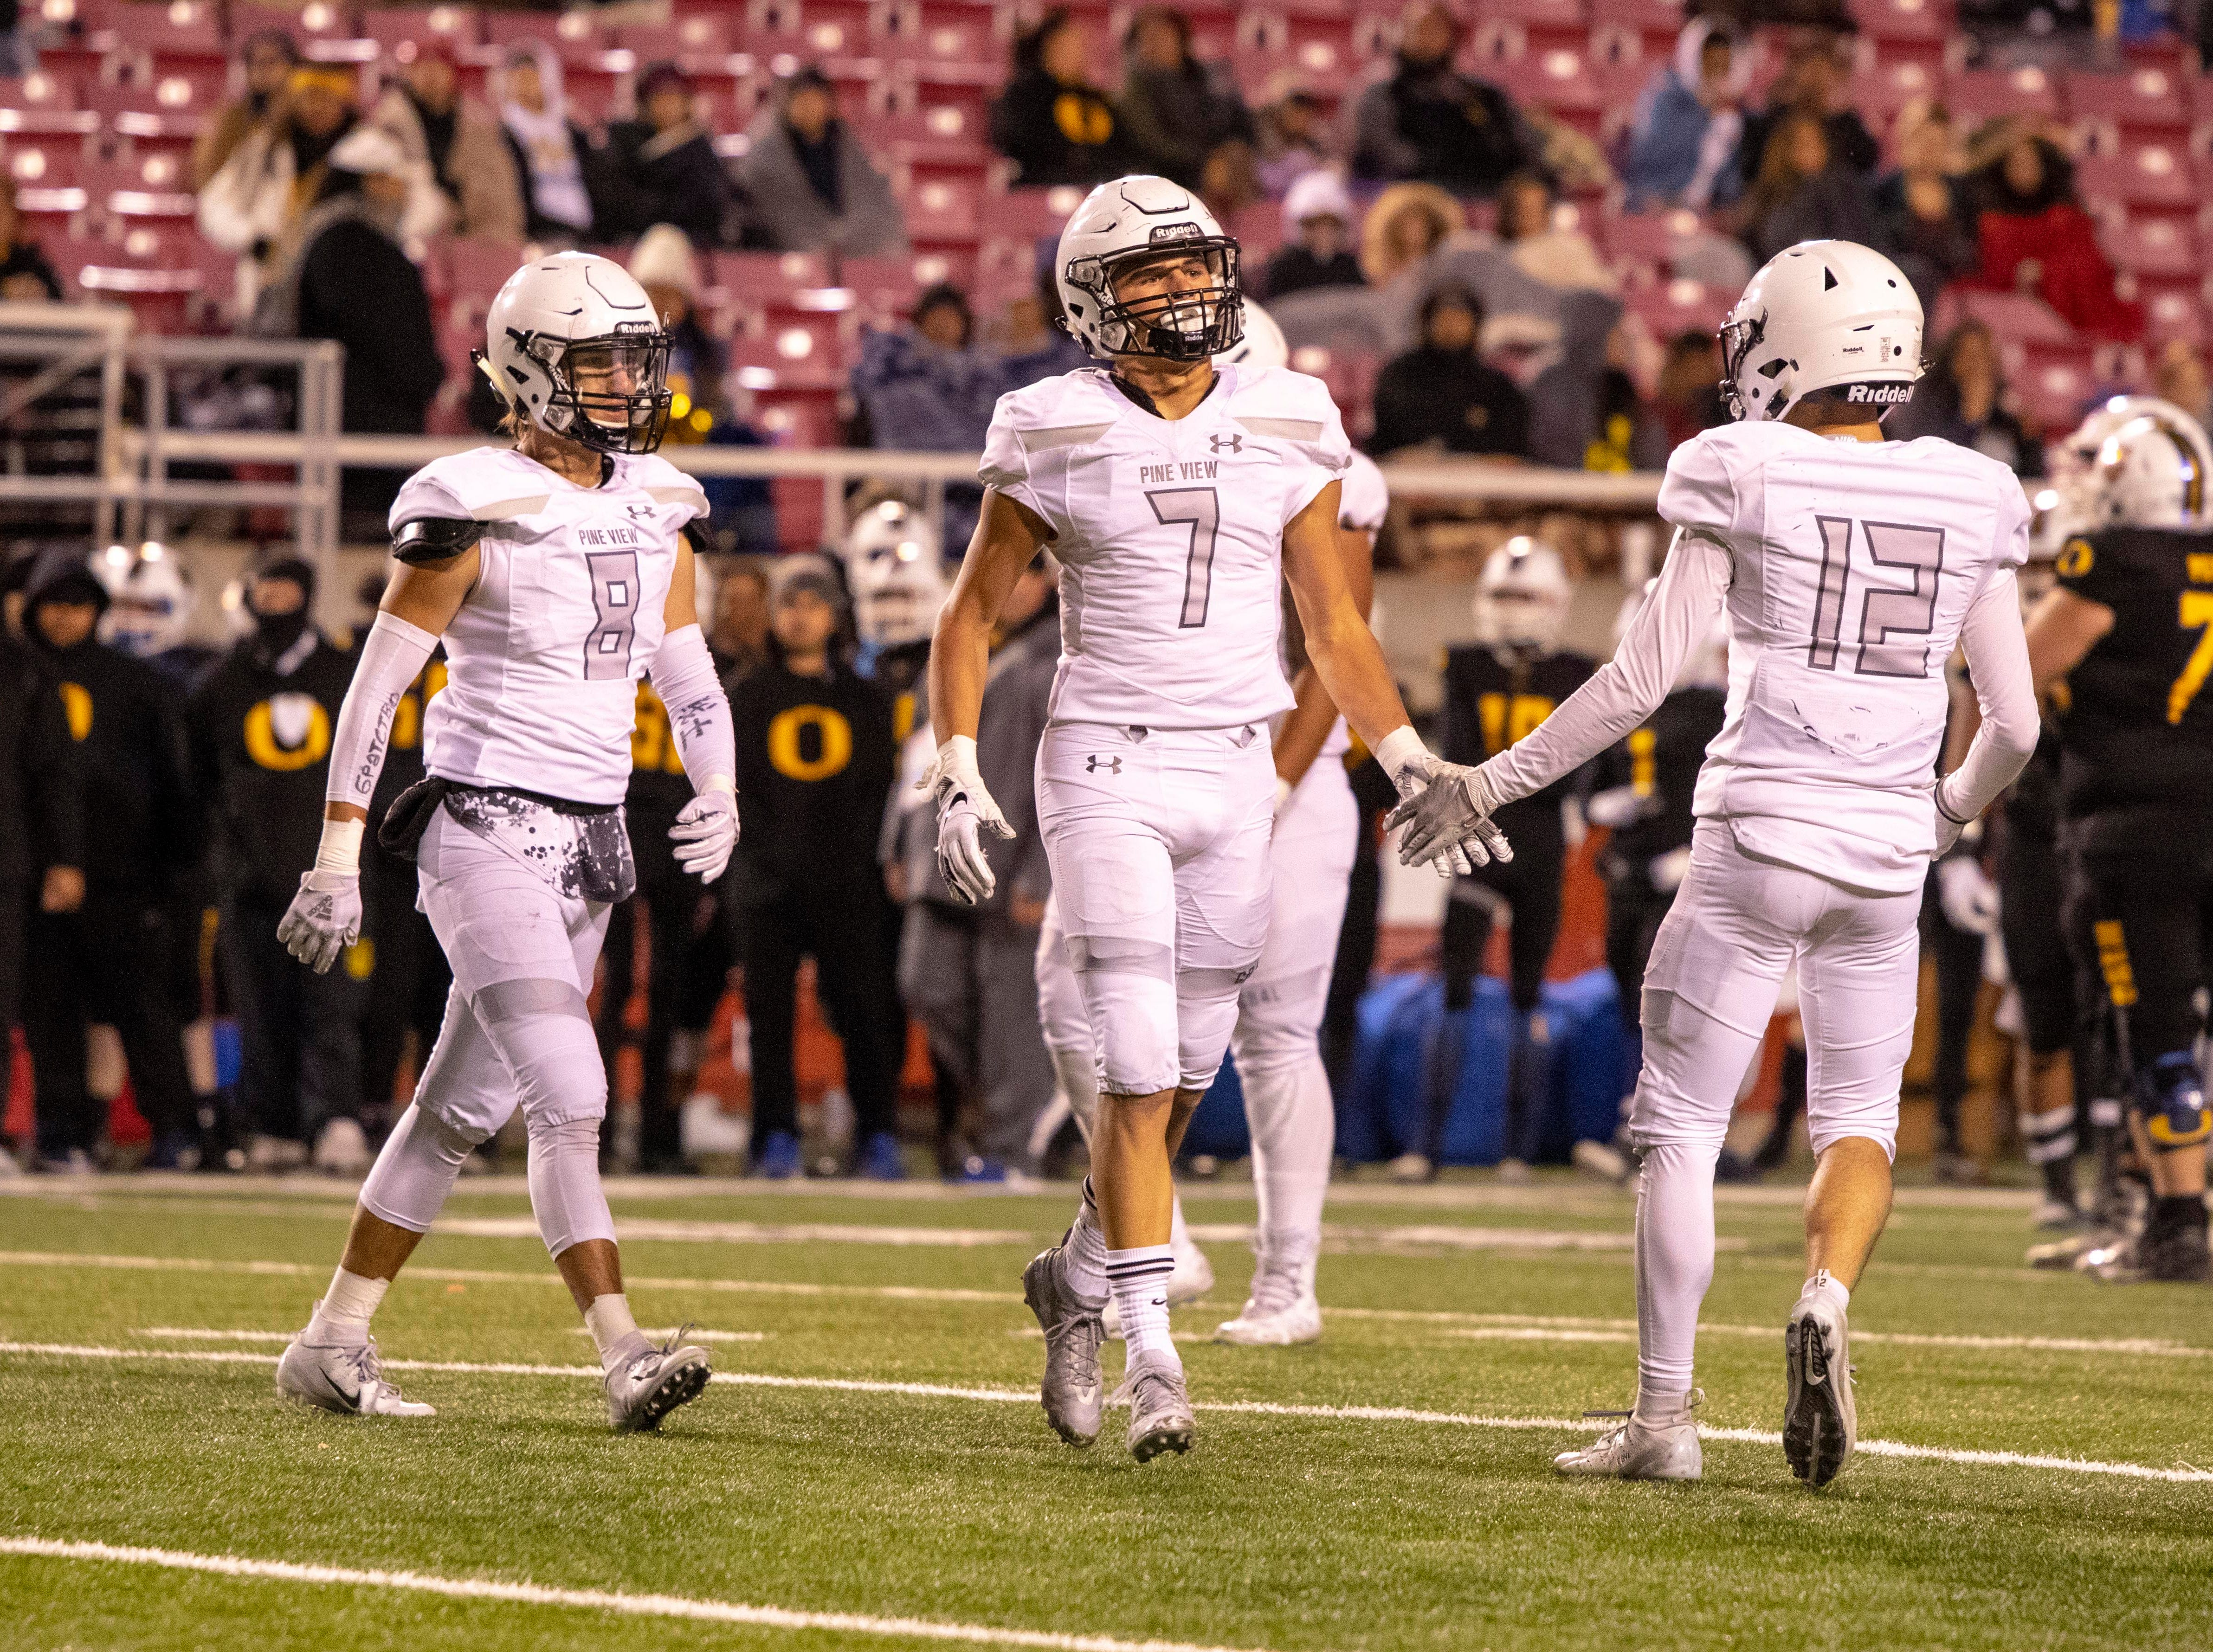 Pine View's Daylor Rymer (7) celebrates an interception with teammates during Friday's playoff game against Orem in Salt Lake City, Nov. 9, 2018.